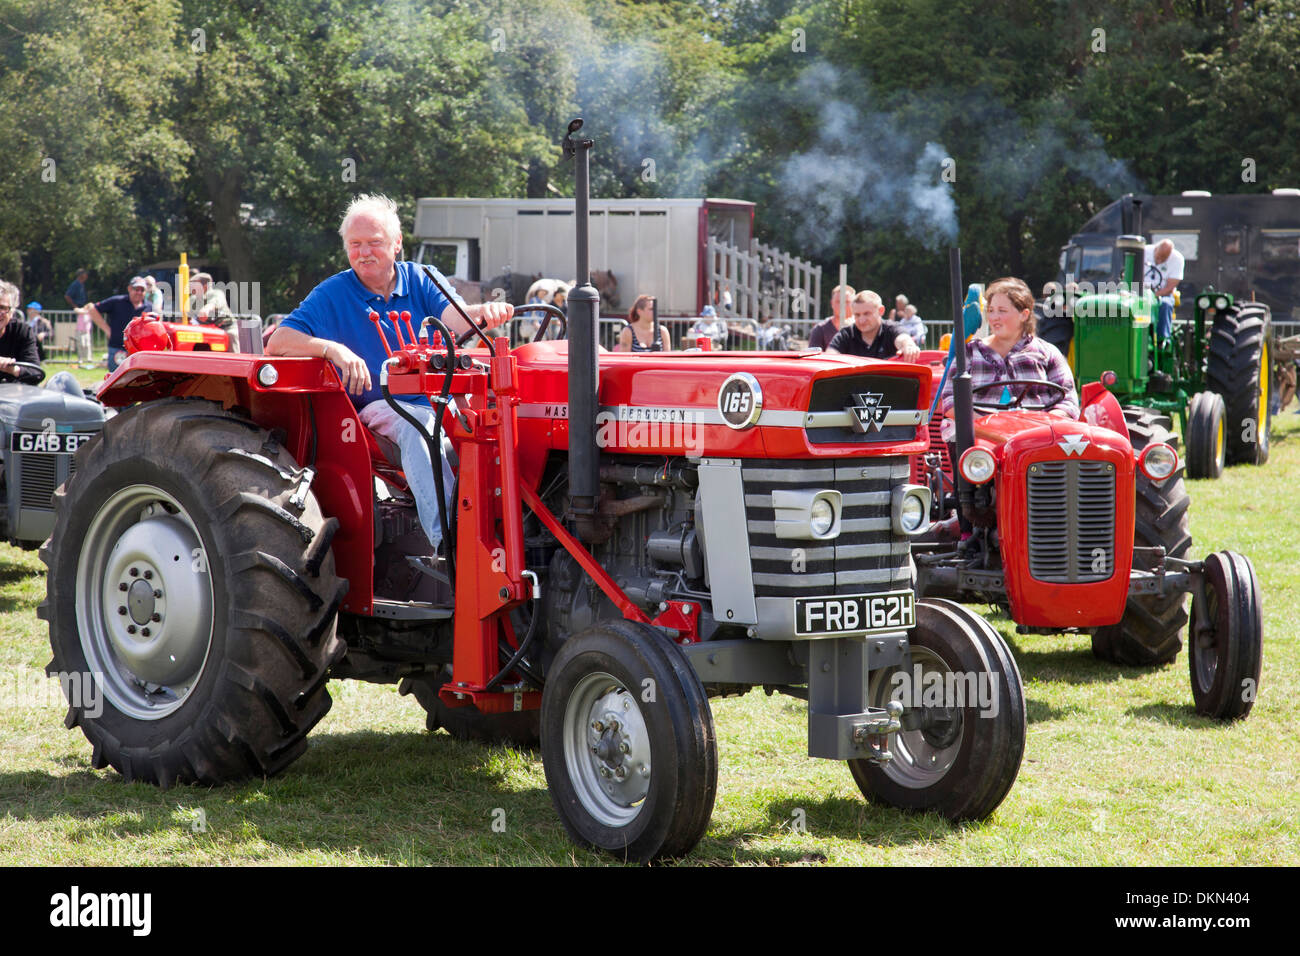 Antique Tractor Shows : Massey ferguson tractors at a vintage tractor show in the